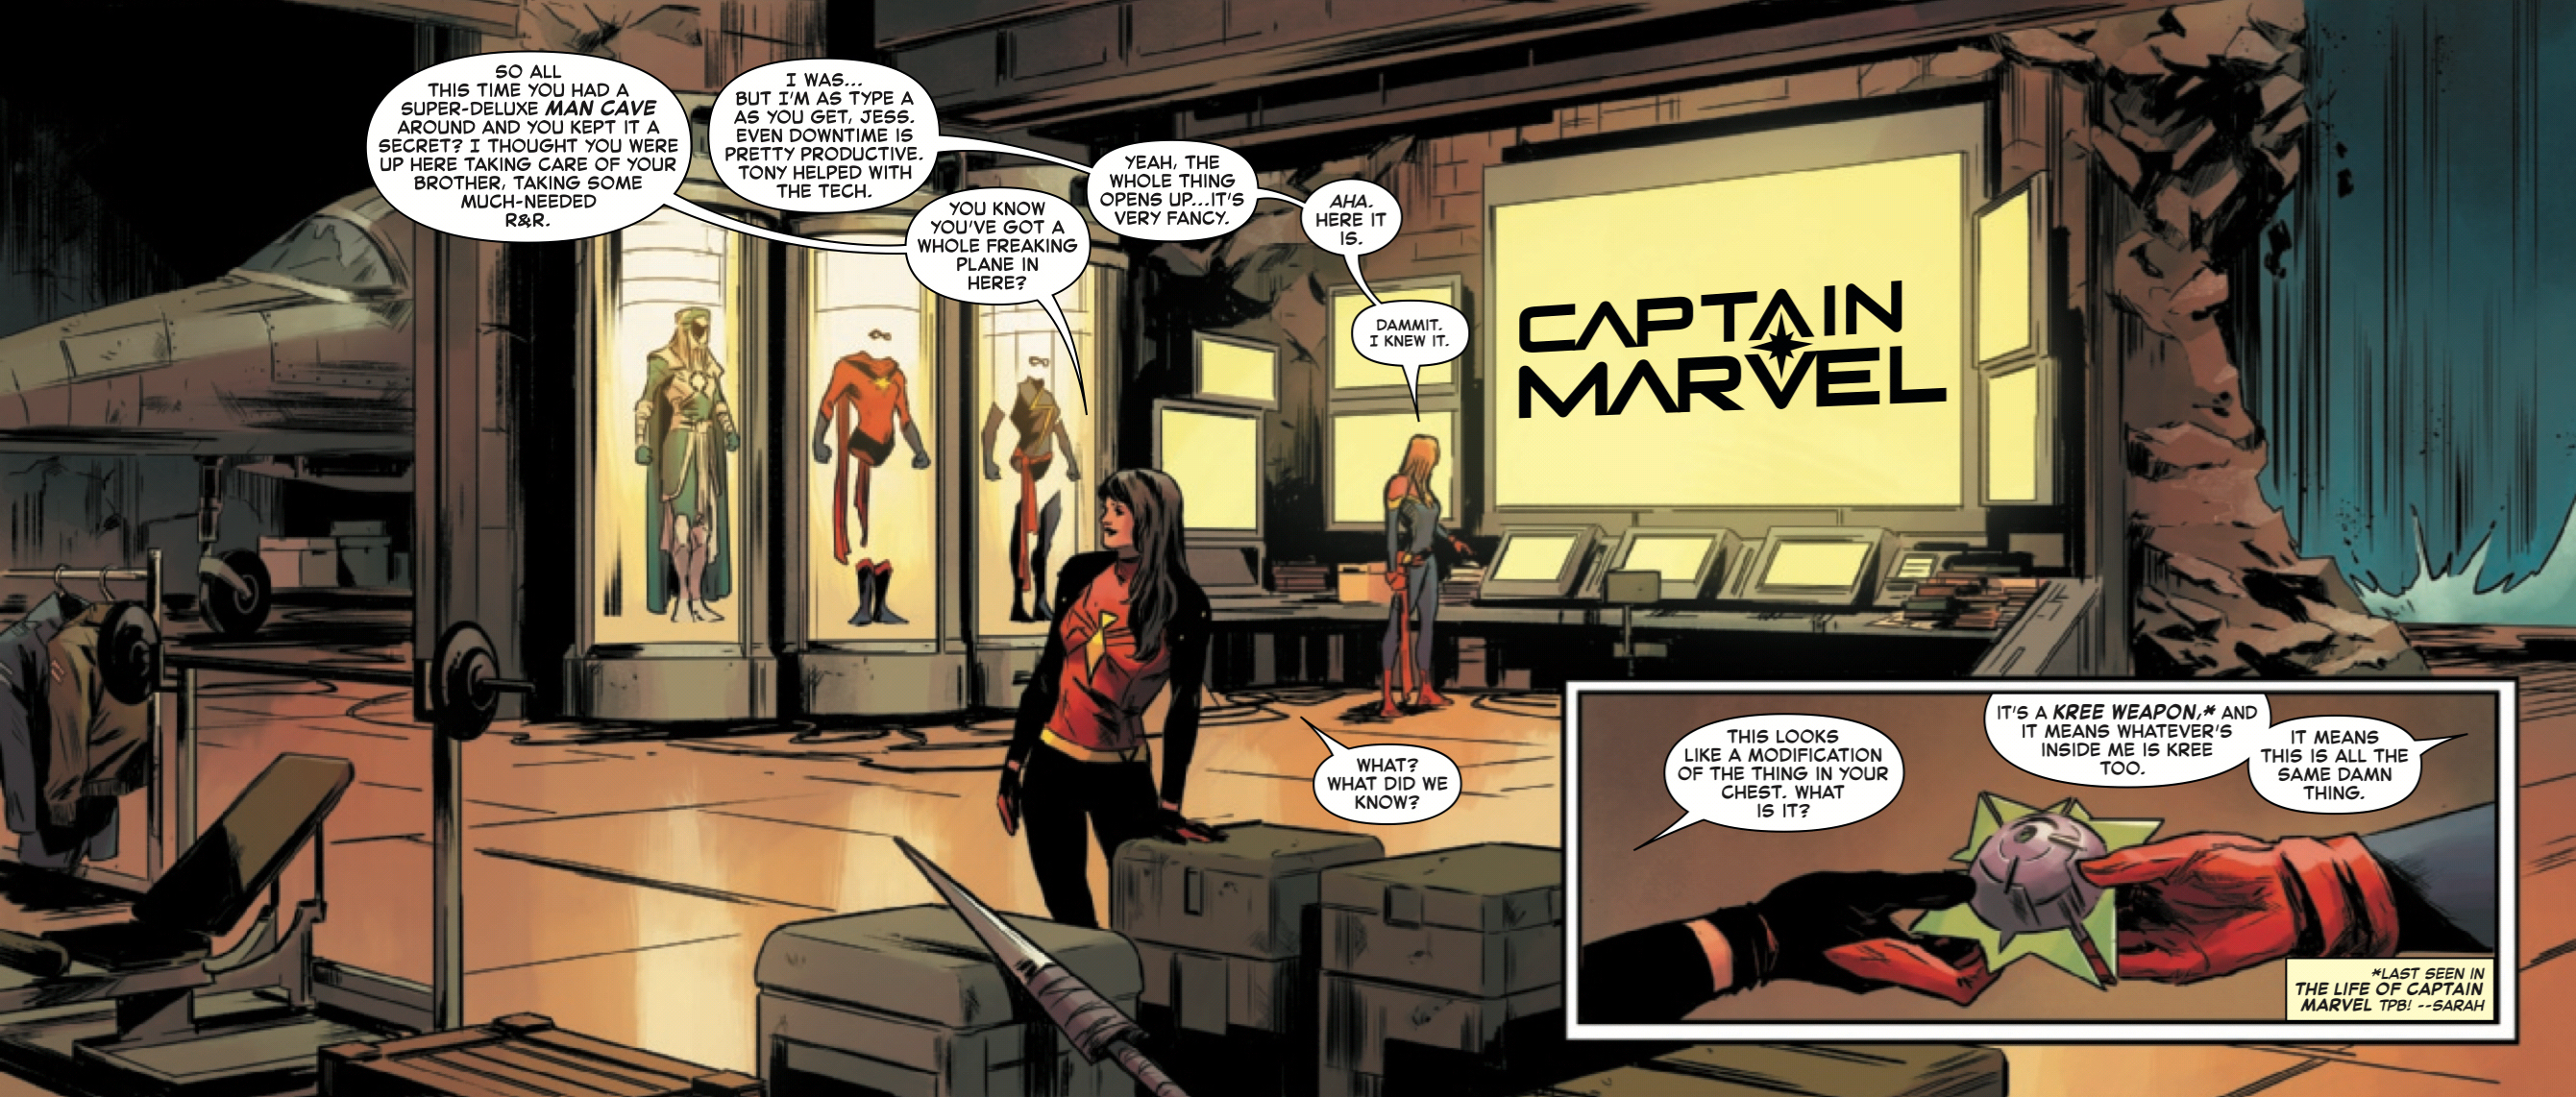 Captain Marvel is losing her powers in the luxury of her own Batcave